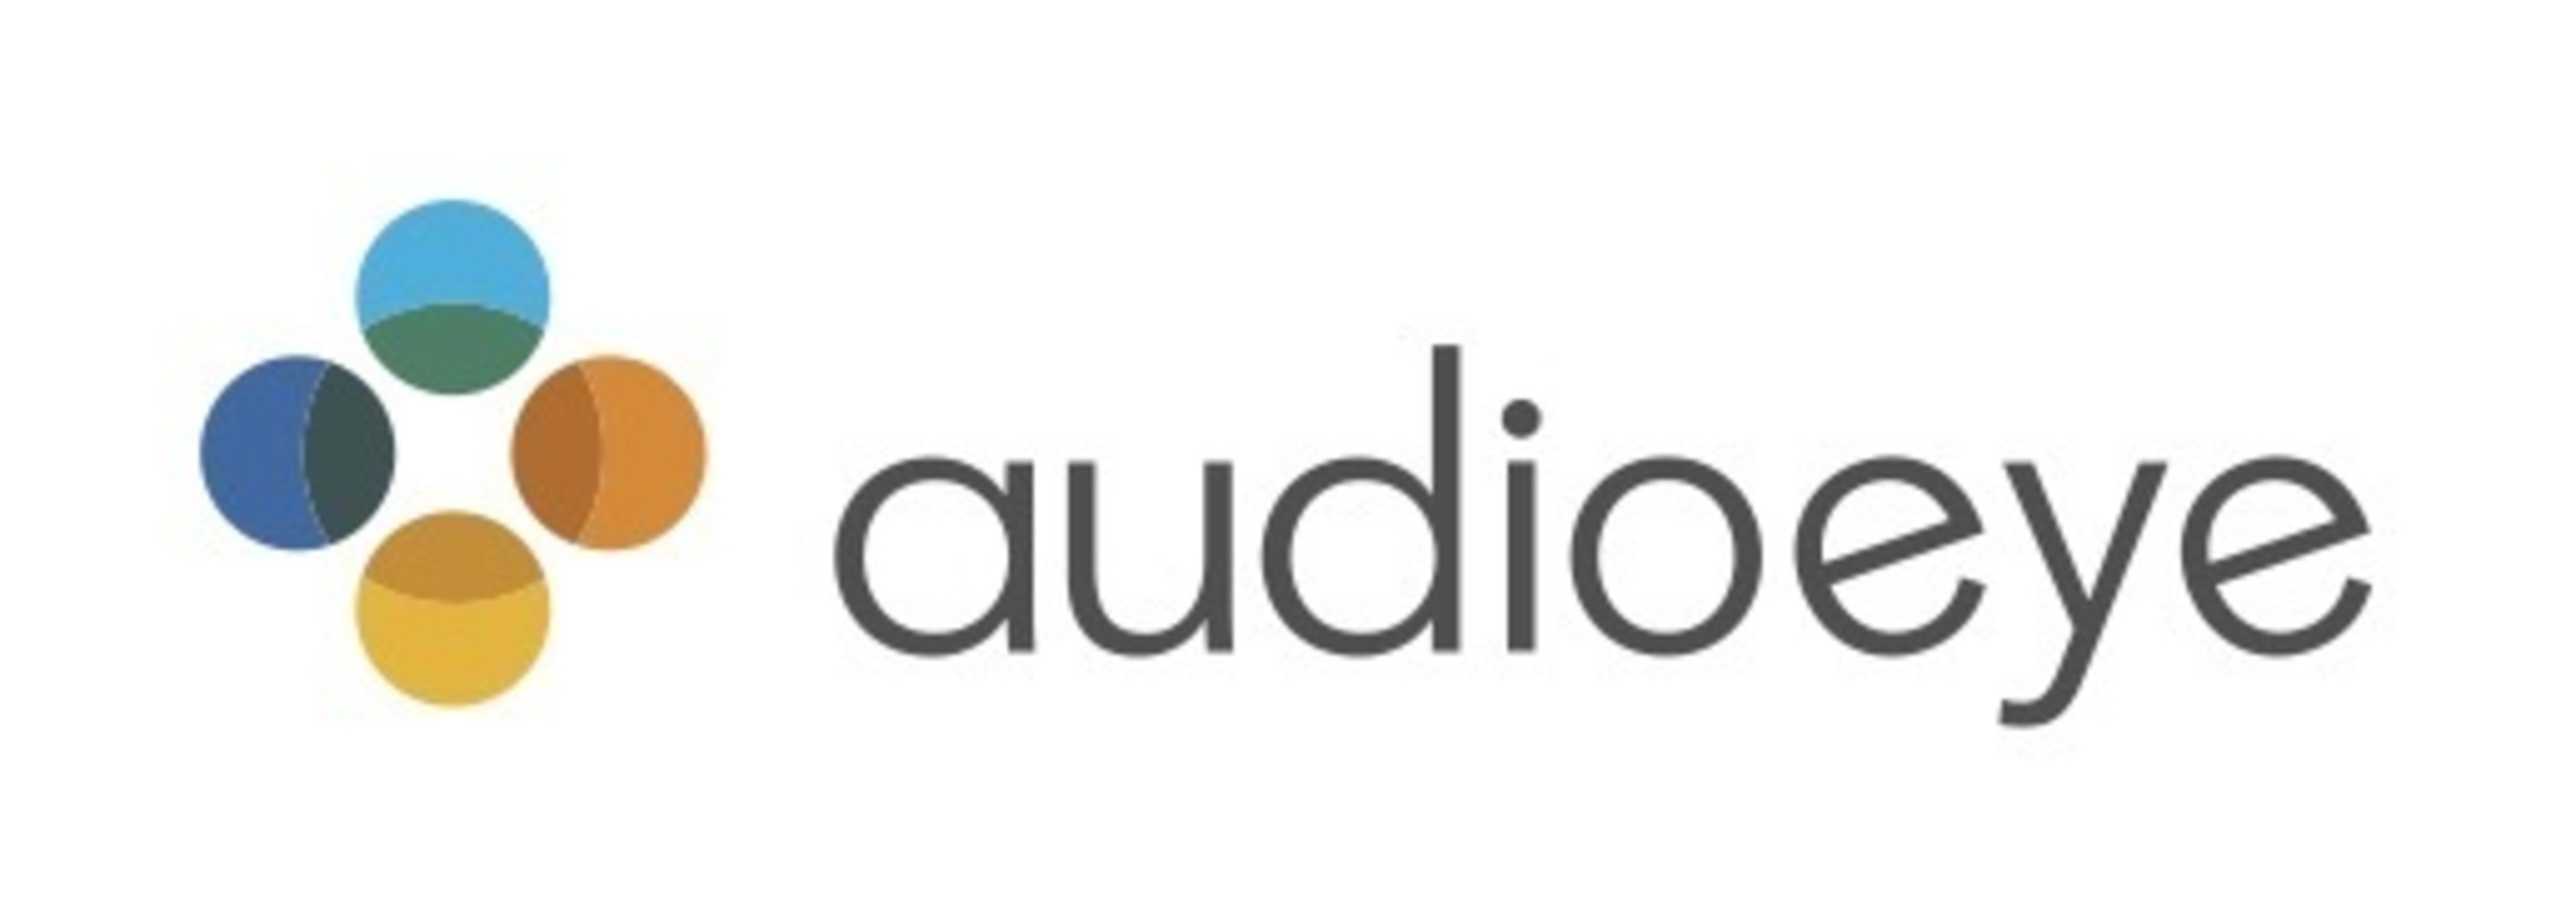 AudioEye Collaborates with ADP in a Commitment to Accessible